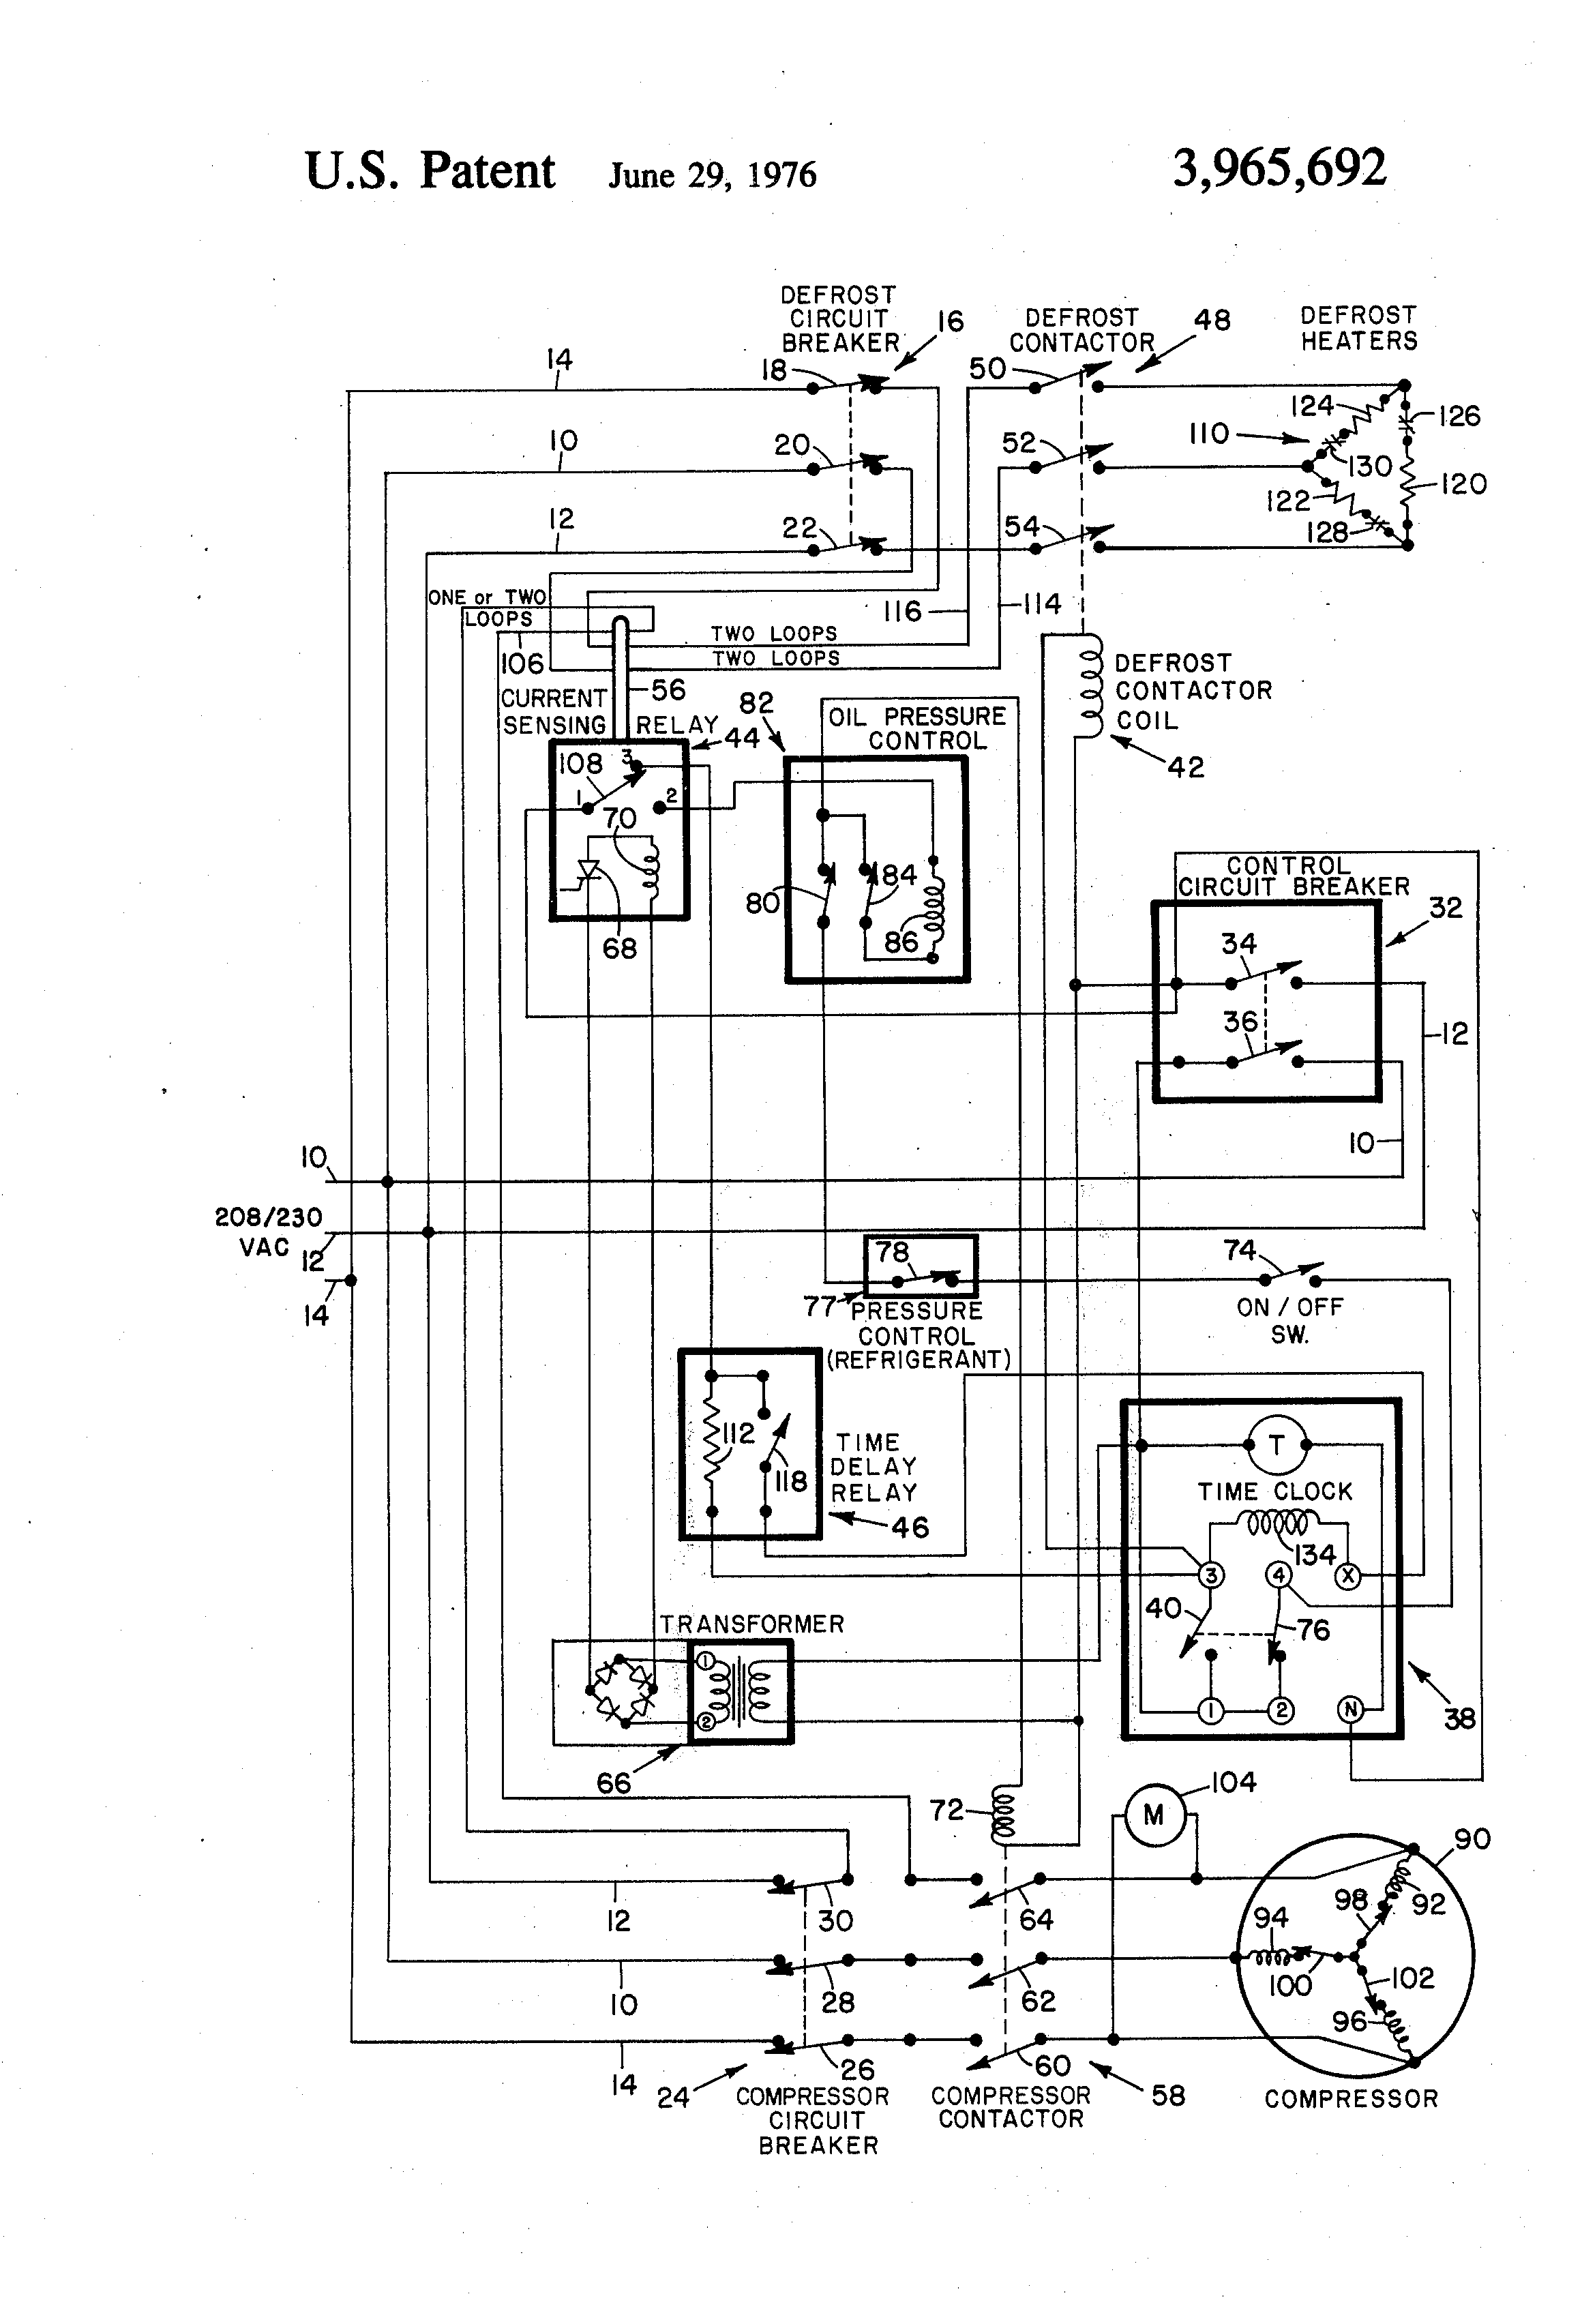 Paragon 8145 20 Defrost Timer Wiring Diagram The